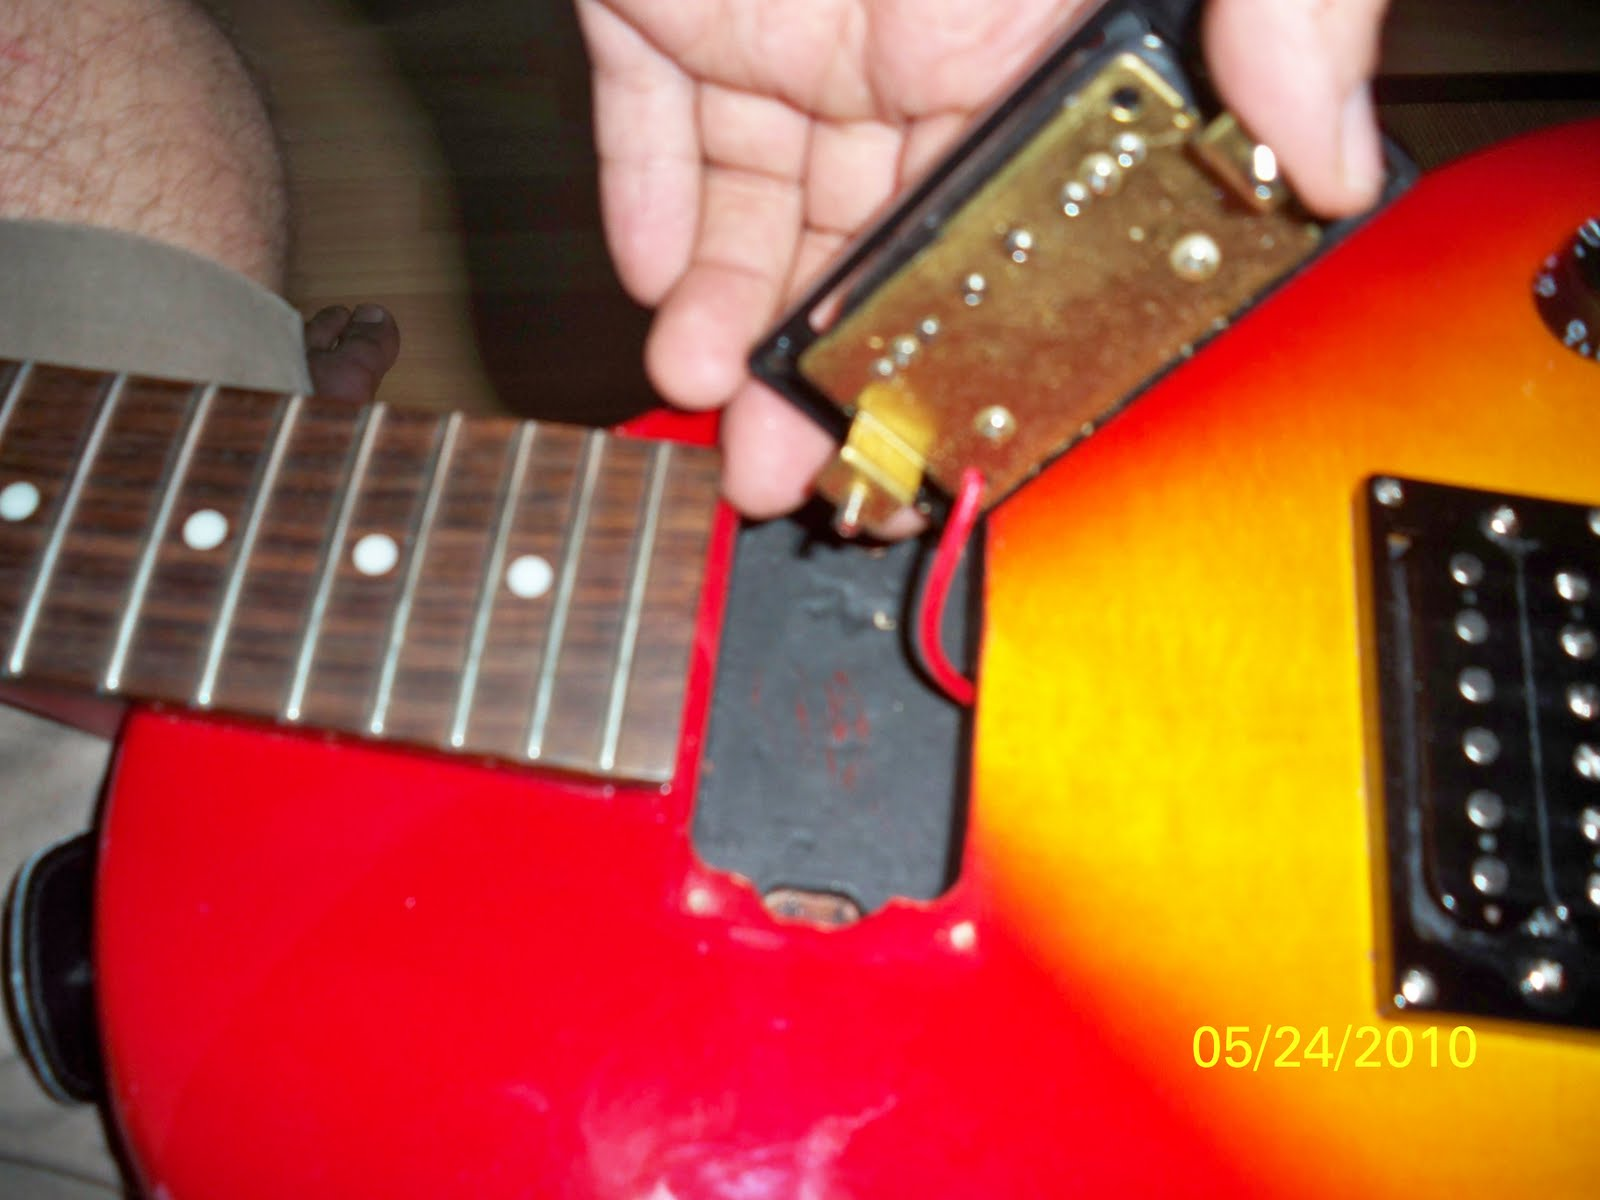 medium resolution of 1959 gibson les paul wiring diagram for guitar wiring diagram epiphone les paul special wiring diagram epiphone les paul special wiring diagram